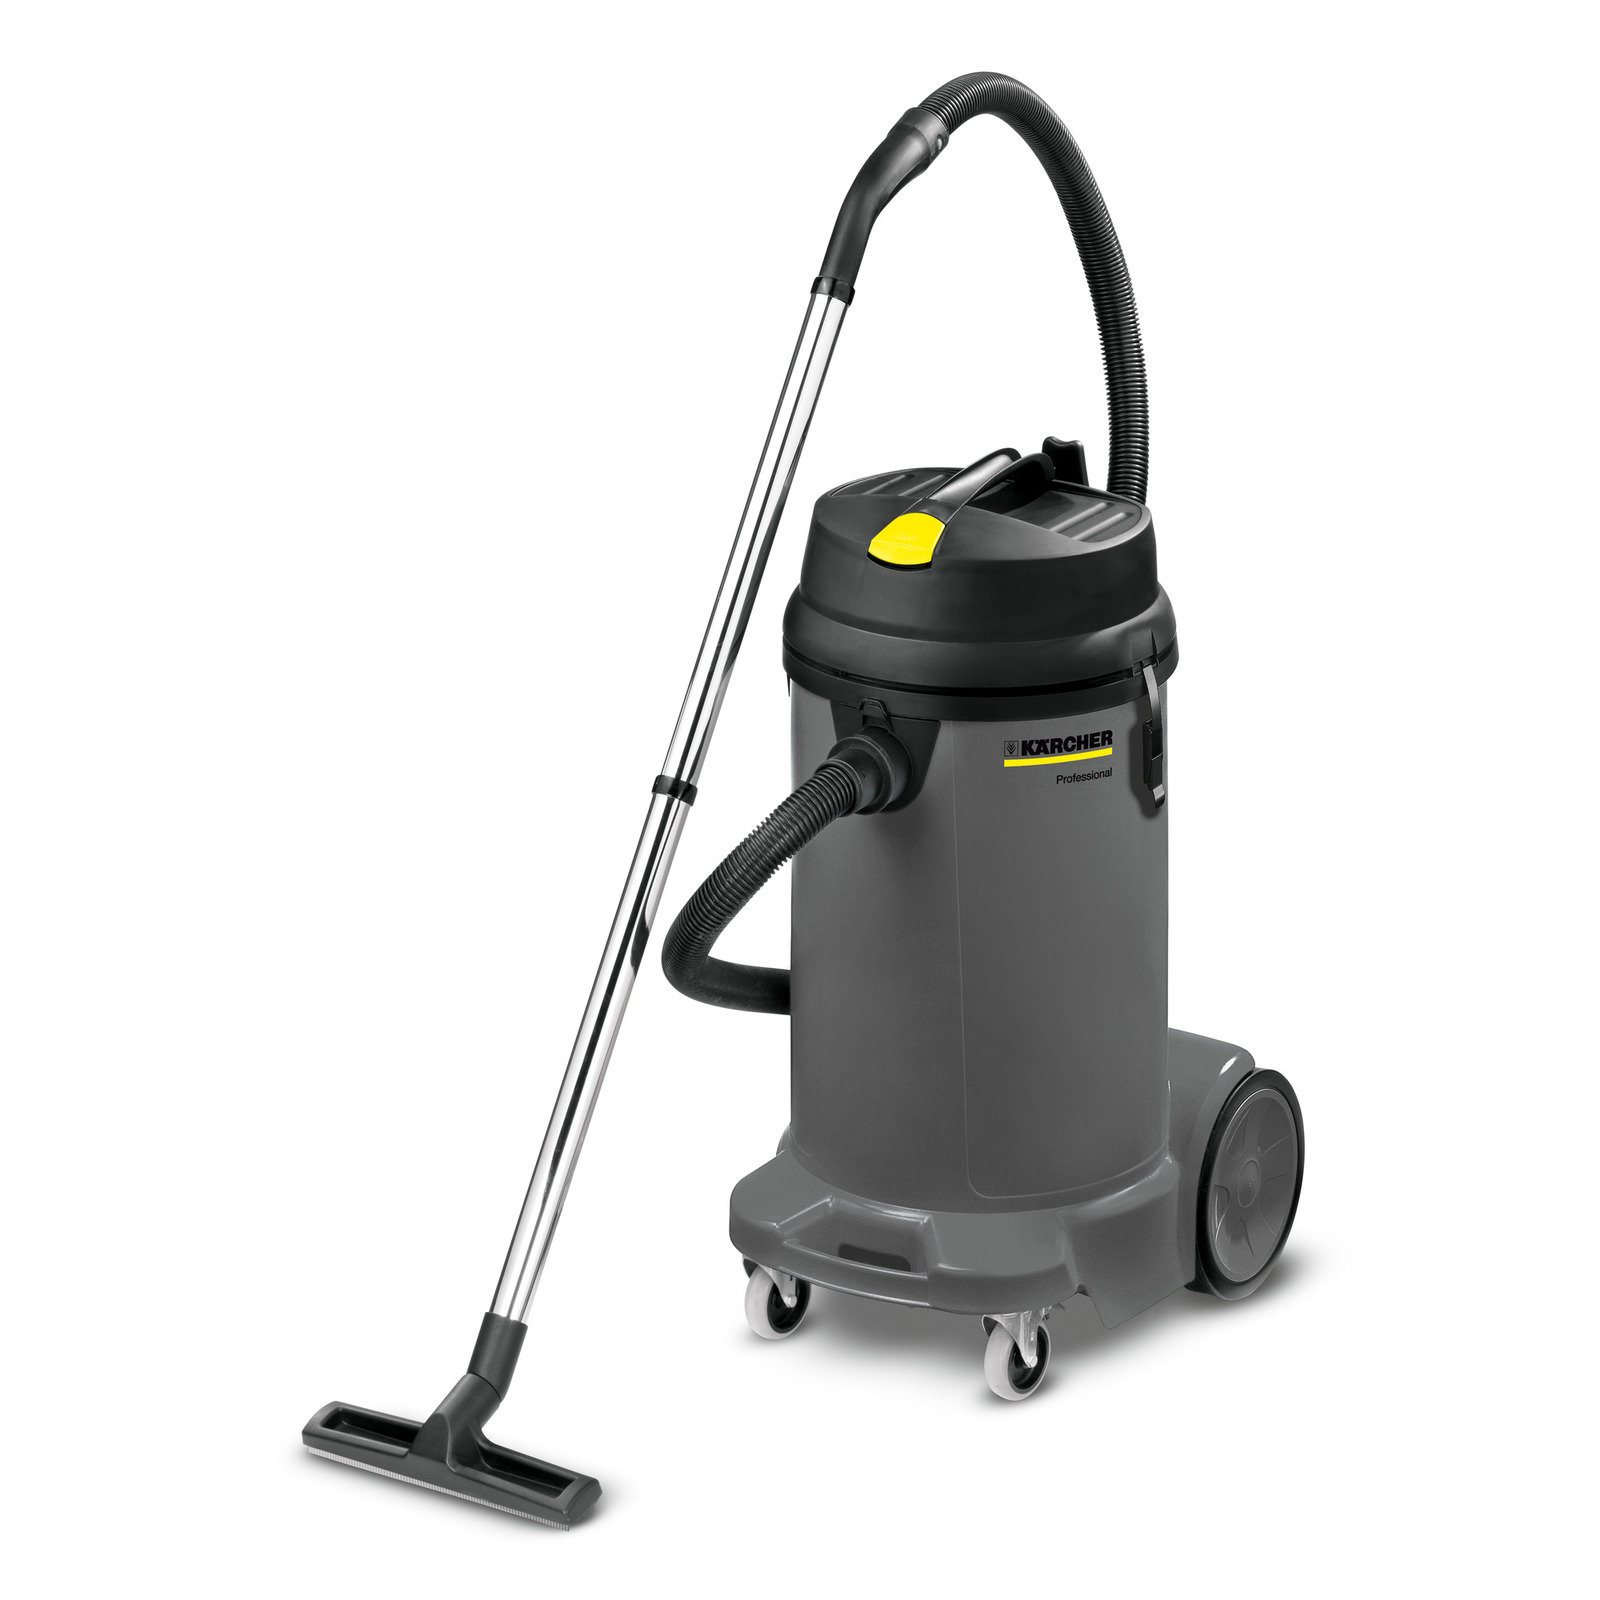 Karcher Wet And Dry Vacuum Cleaner NT 48 1